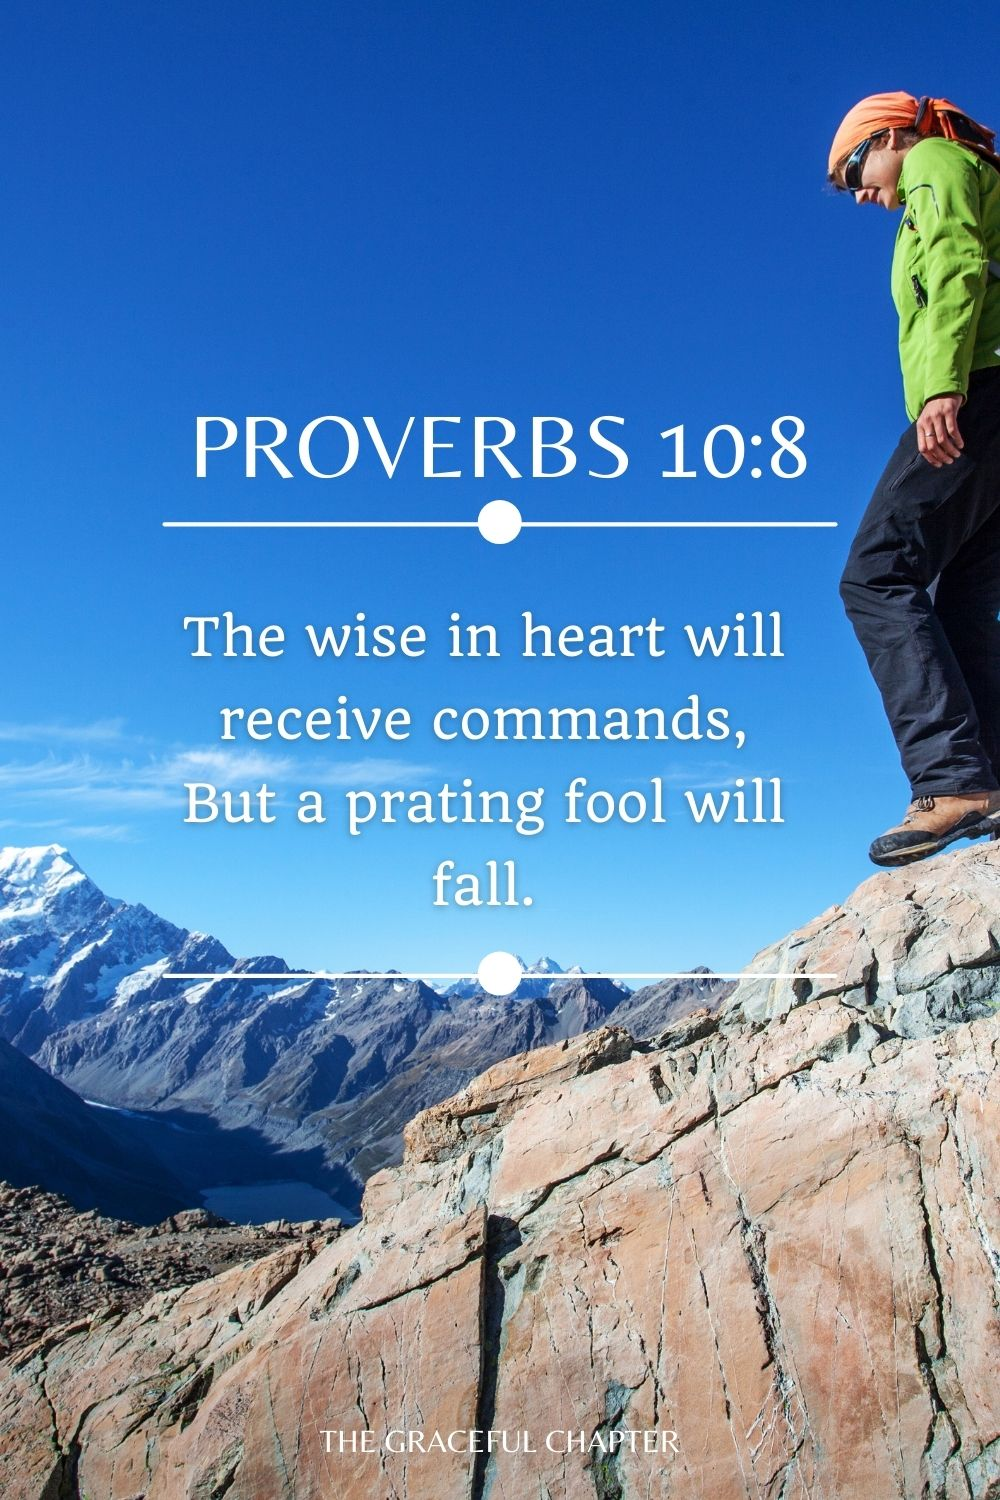 The wise in heart will receive commands, But a prating fool will fall. Proverbs 10:8